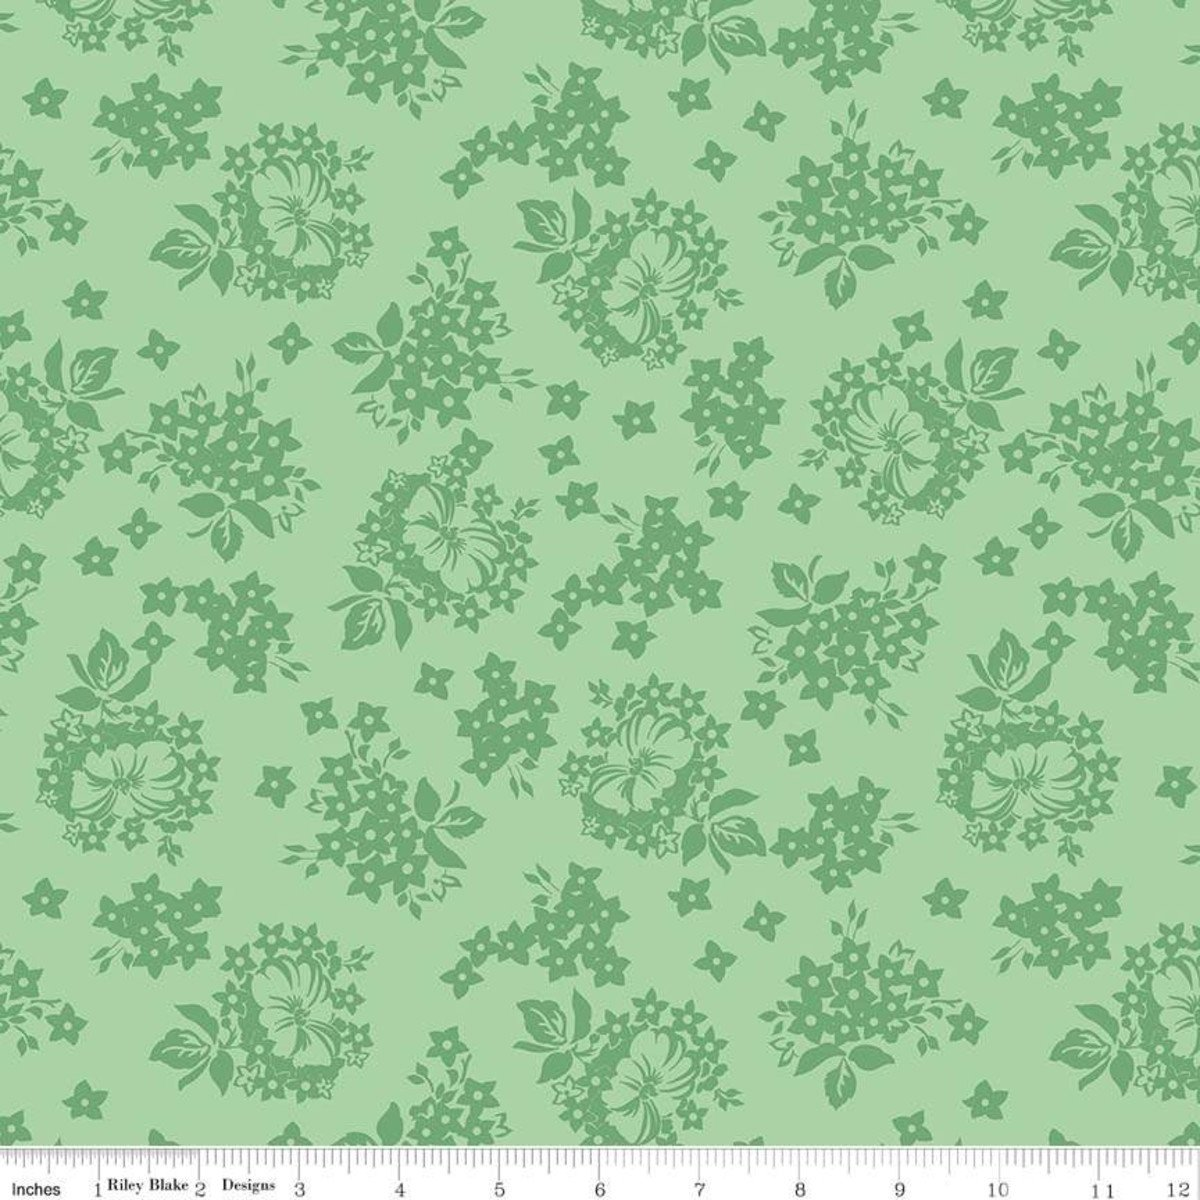 Penny Rose -May Belle - C7652 - Green